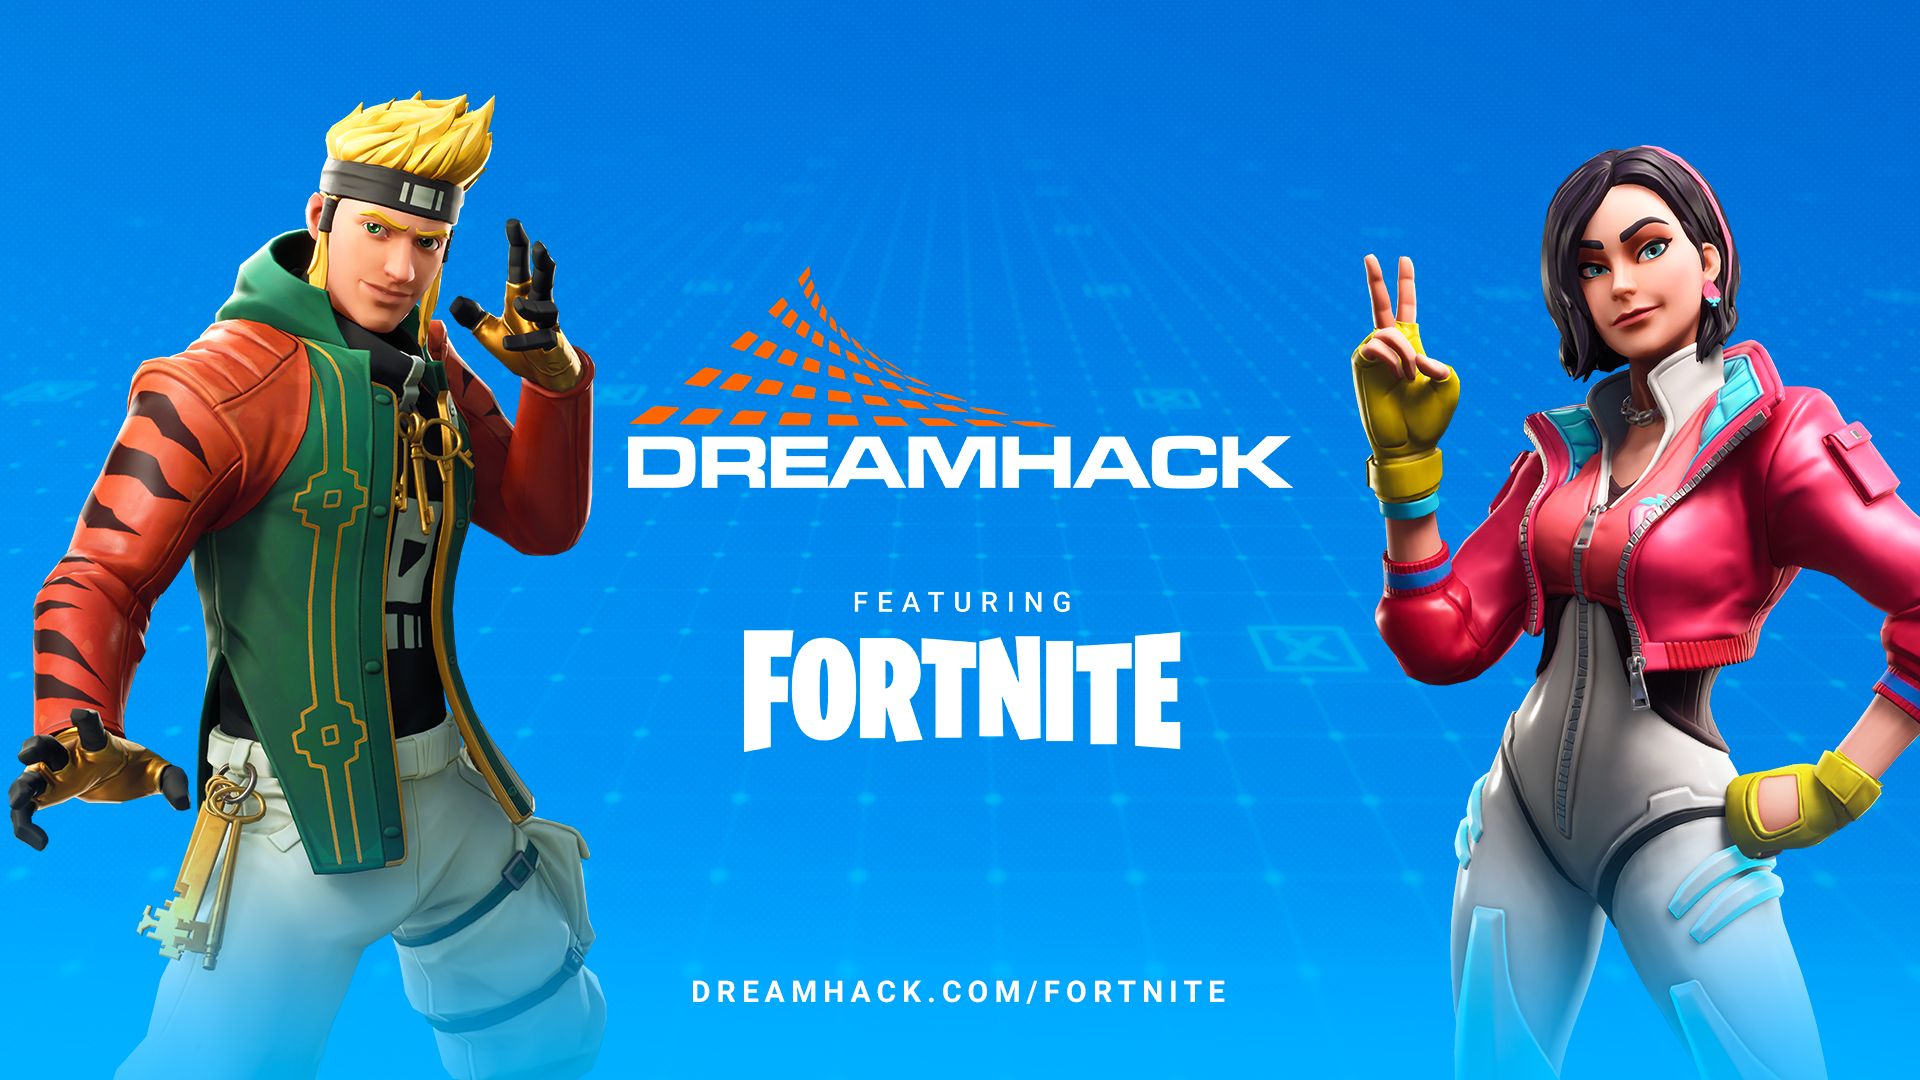 DreamHack announces two $250,000 Fortnite tournaments